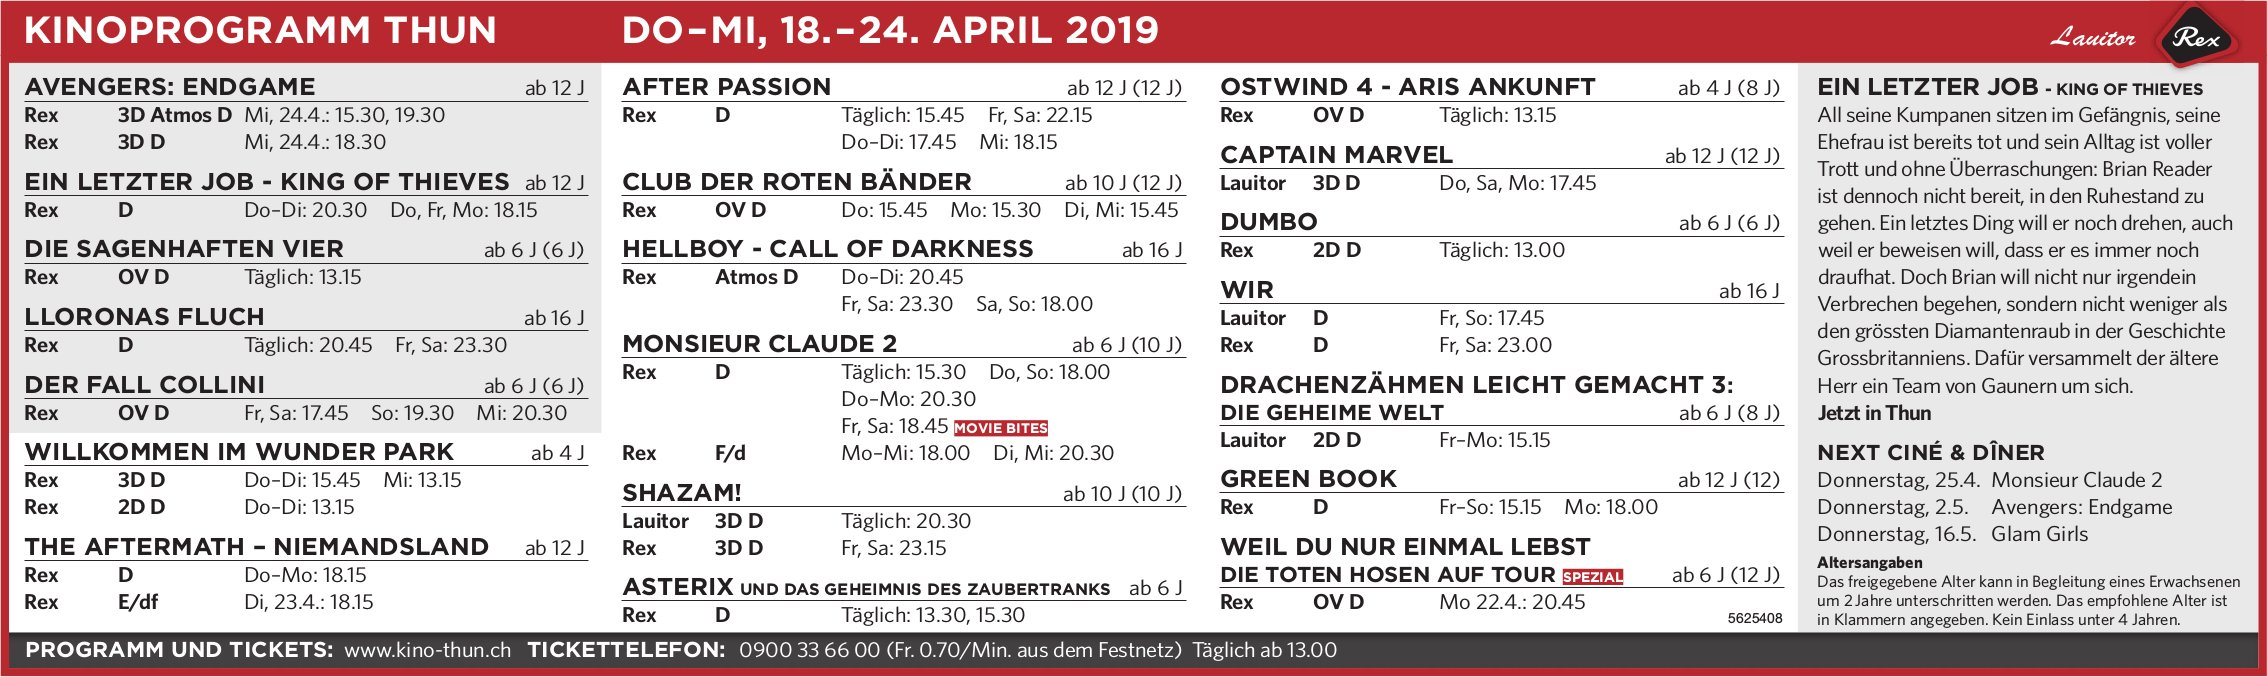 KINOPROGRAMM THUN, DO–MI, 18.–24. APRIL